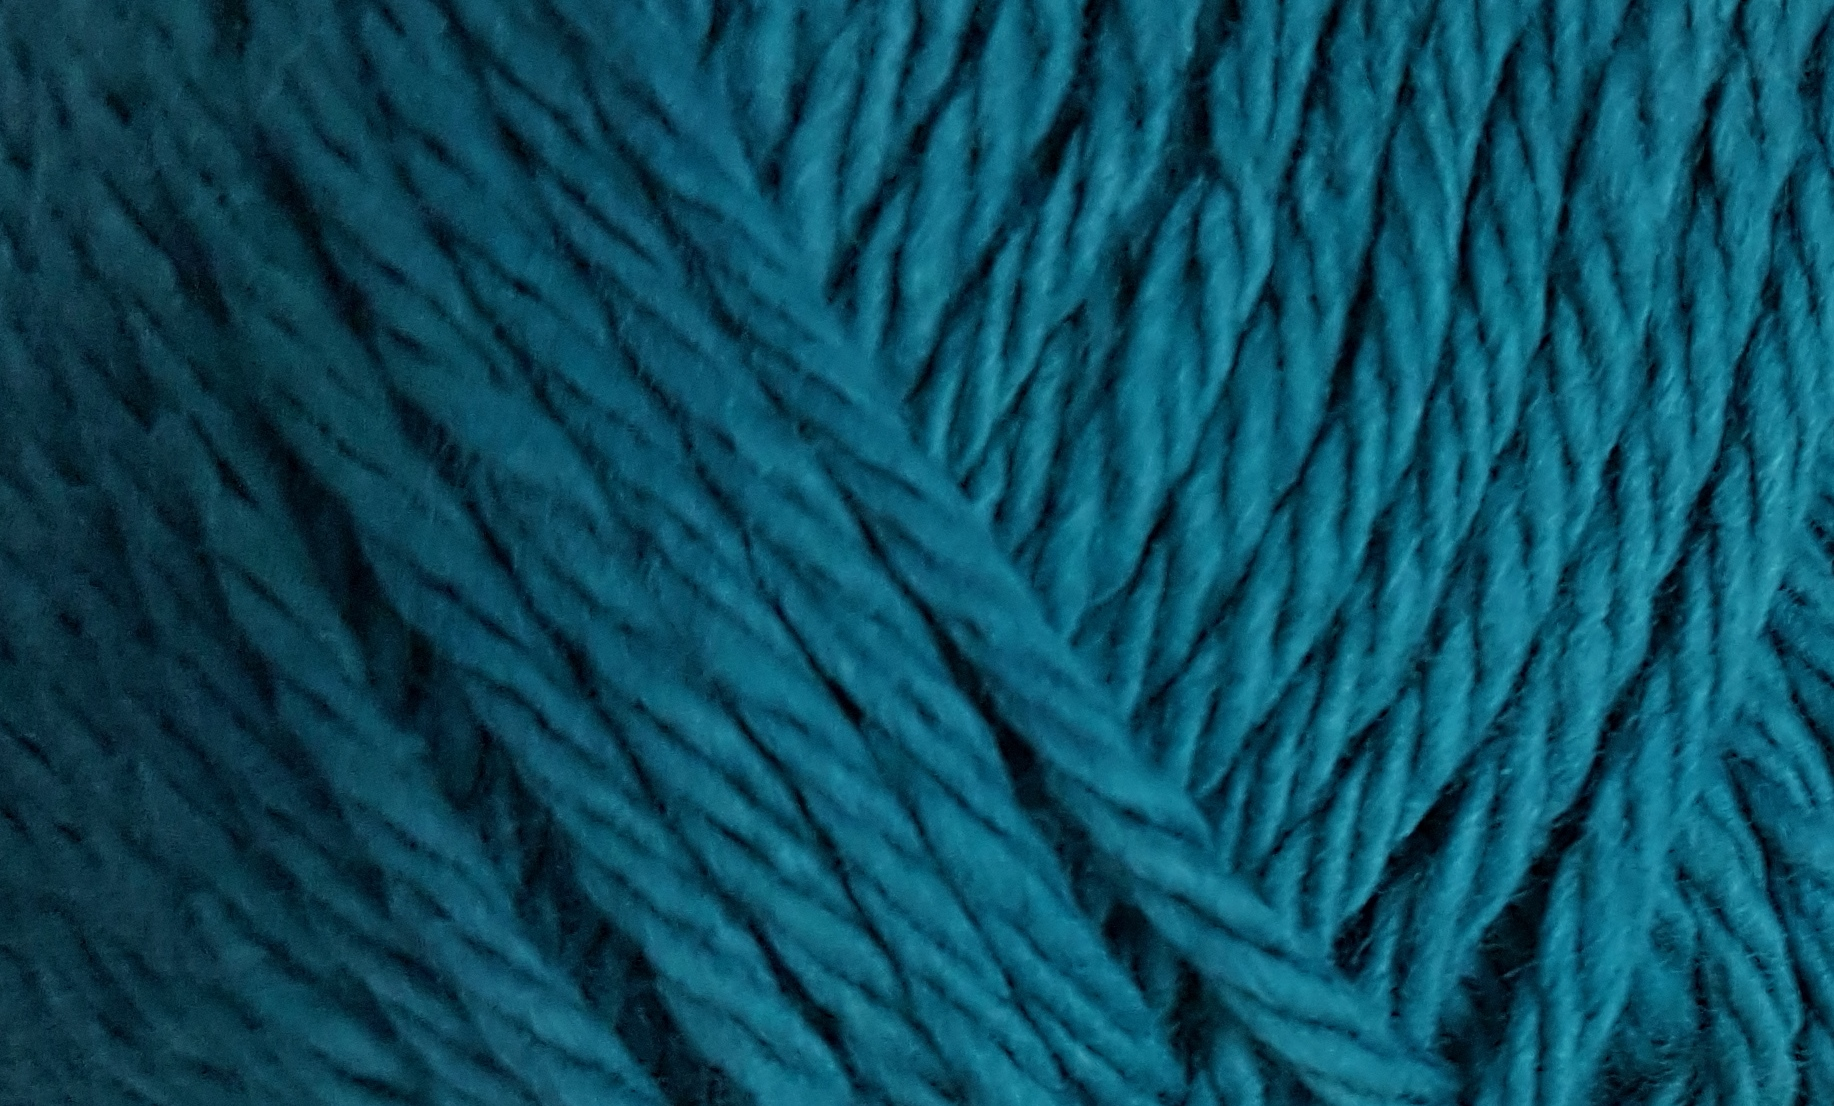 Bernat Handicrafter 1745 Teal 1.75 ounce or 50 gram ball. 100% Cotton.